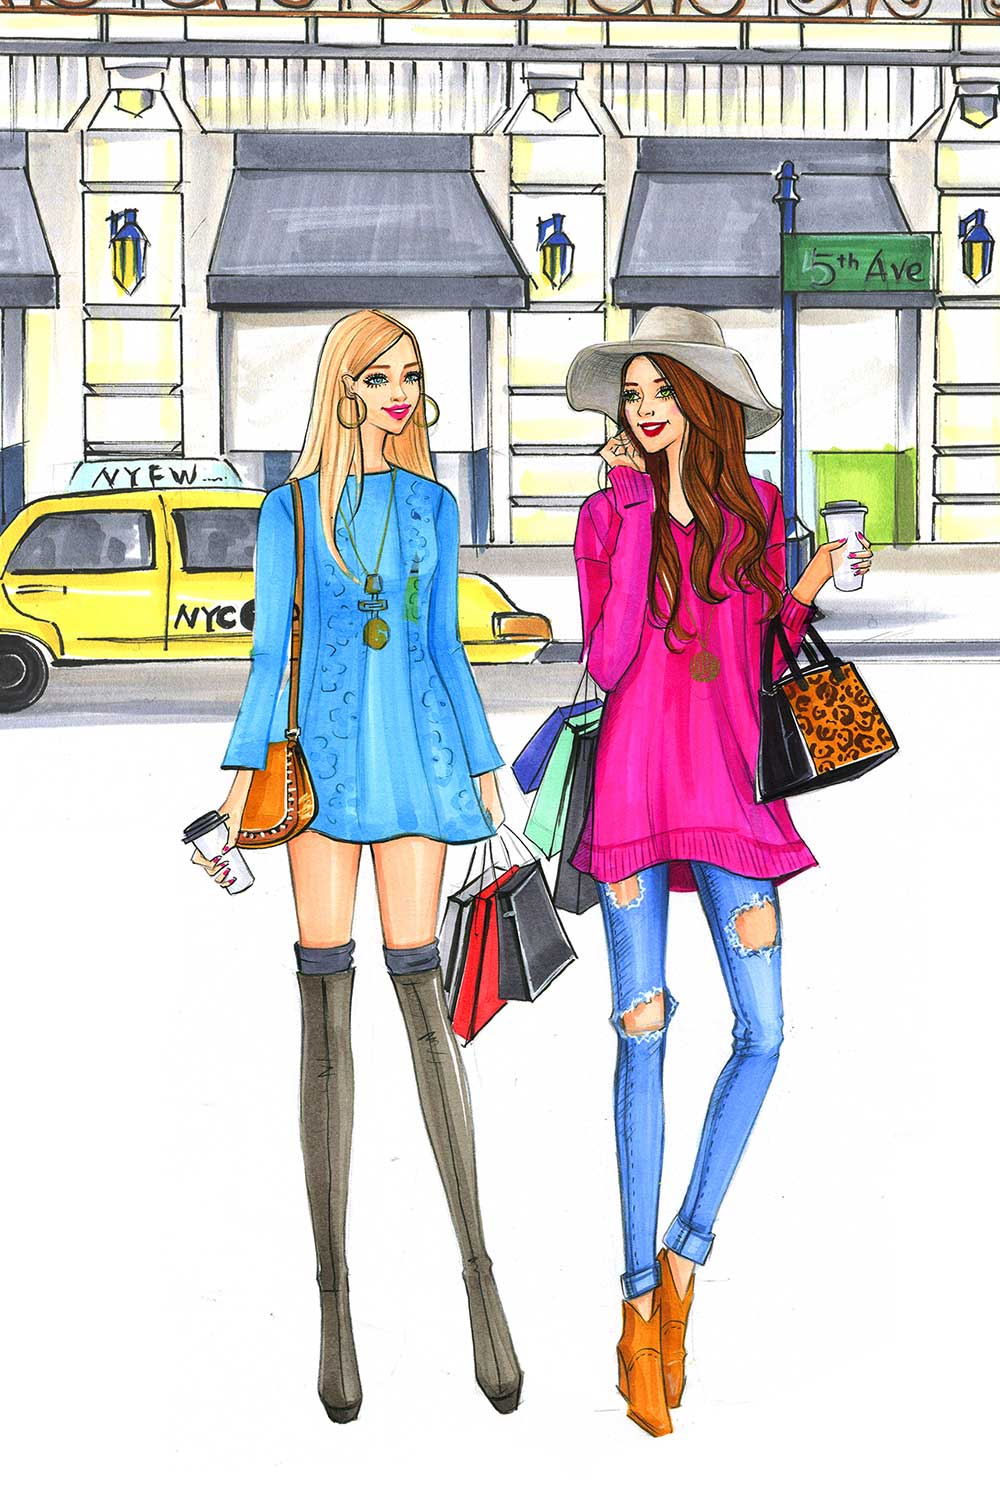 Fashion illustration for Sydewalk blogger platform by Houston fashion illustrator Rongrong DeVoe